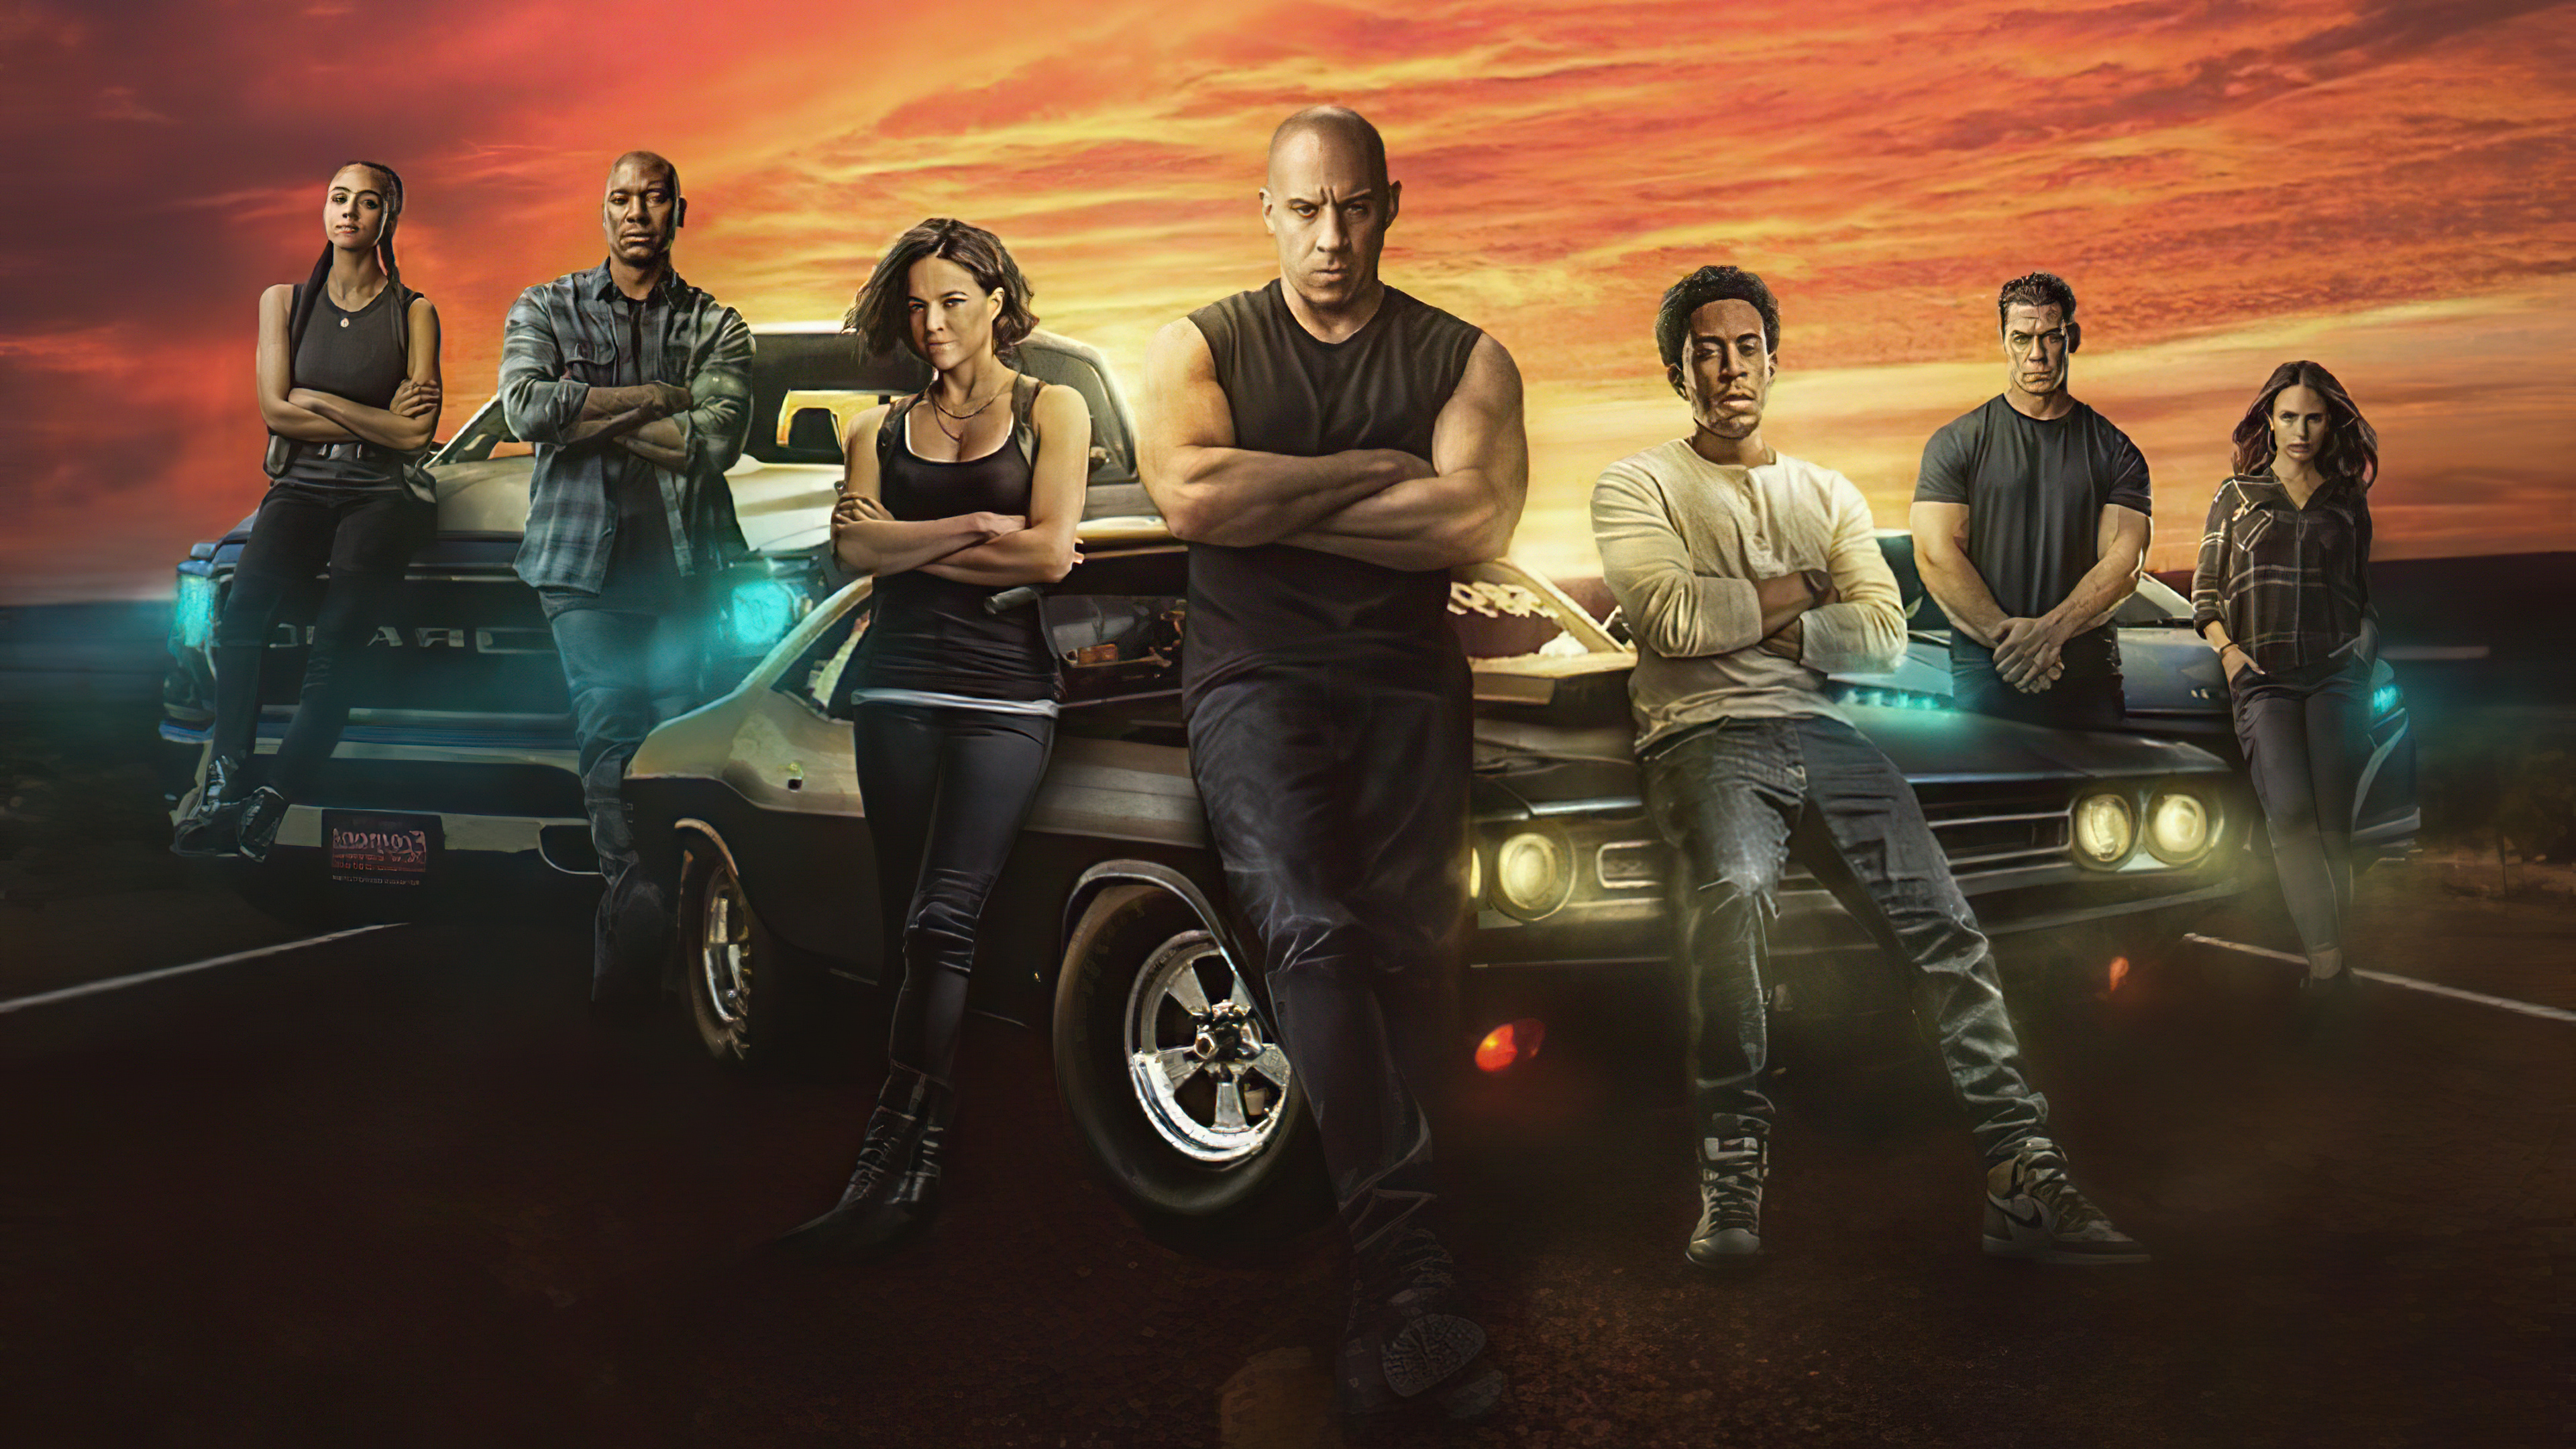 Fast And Furious 9 The Fast Saga 2020 Hd Movies 4k Wallpapers Images Backgrounds Photos And Pictures